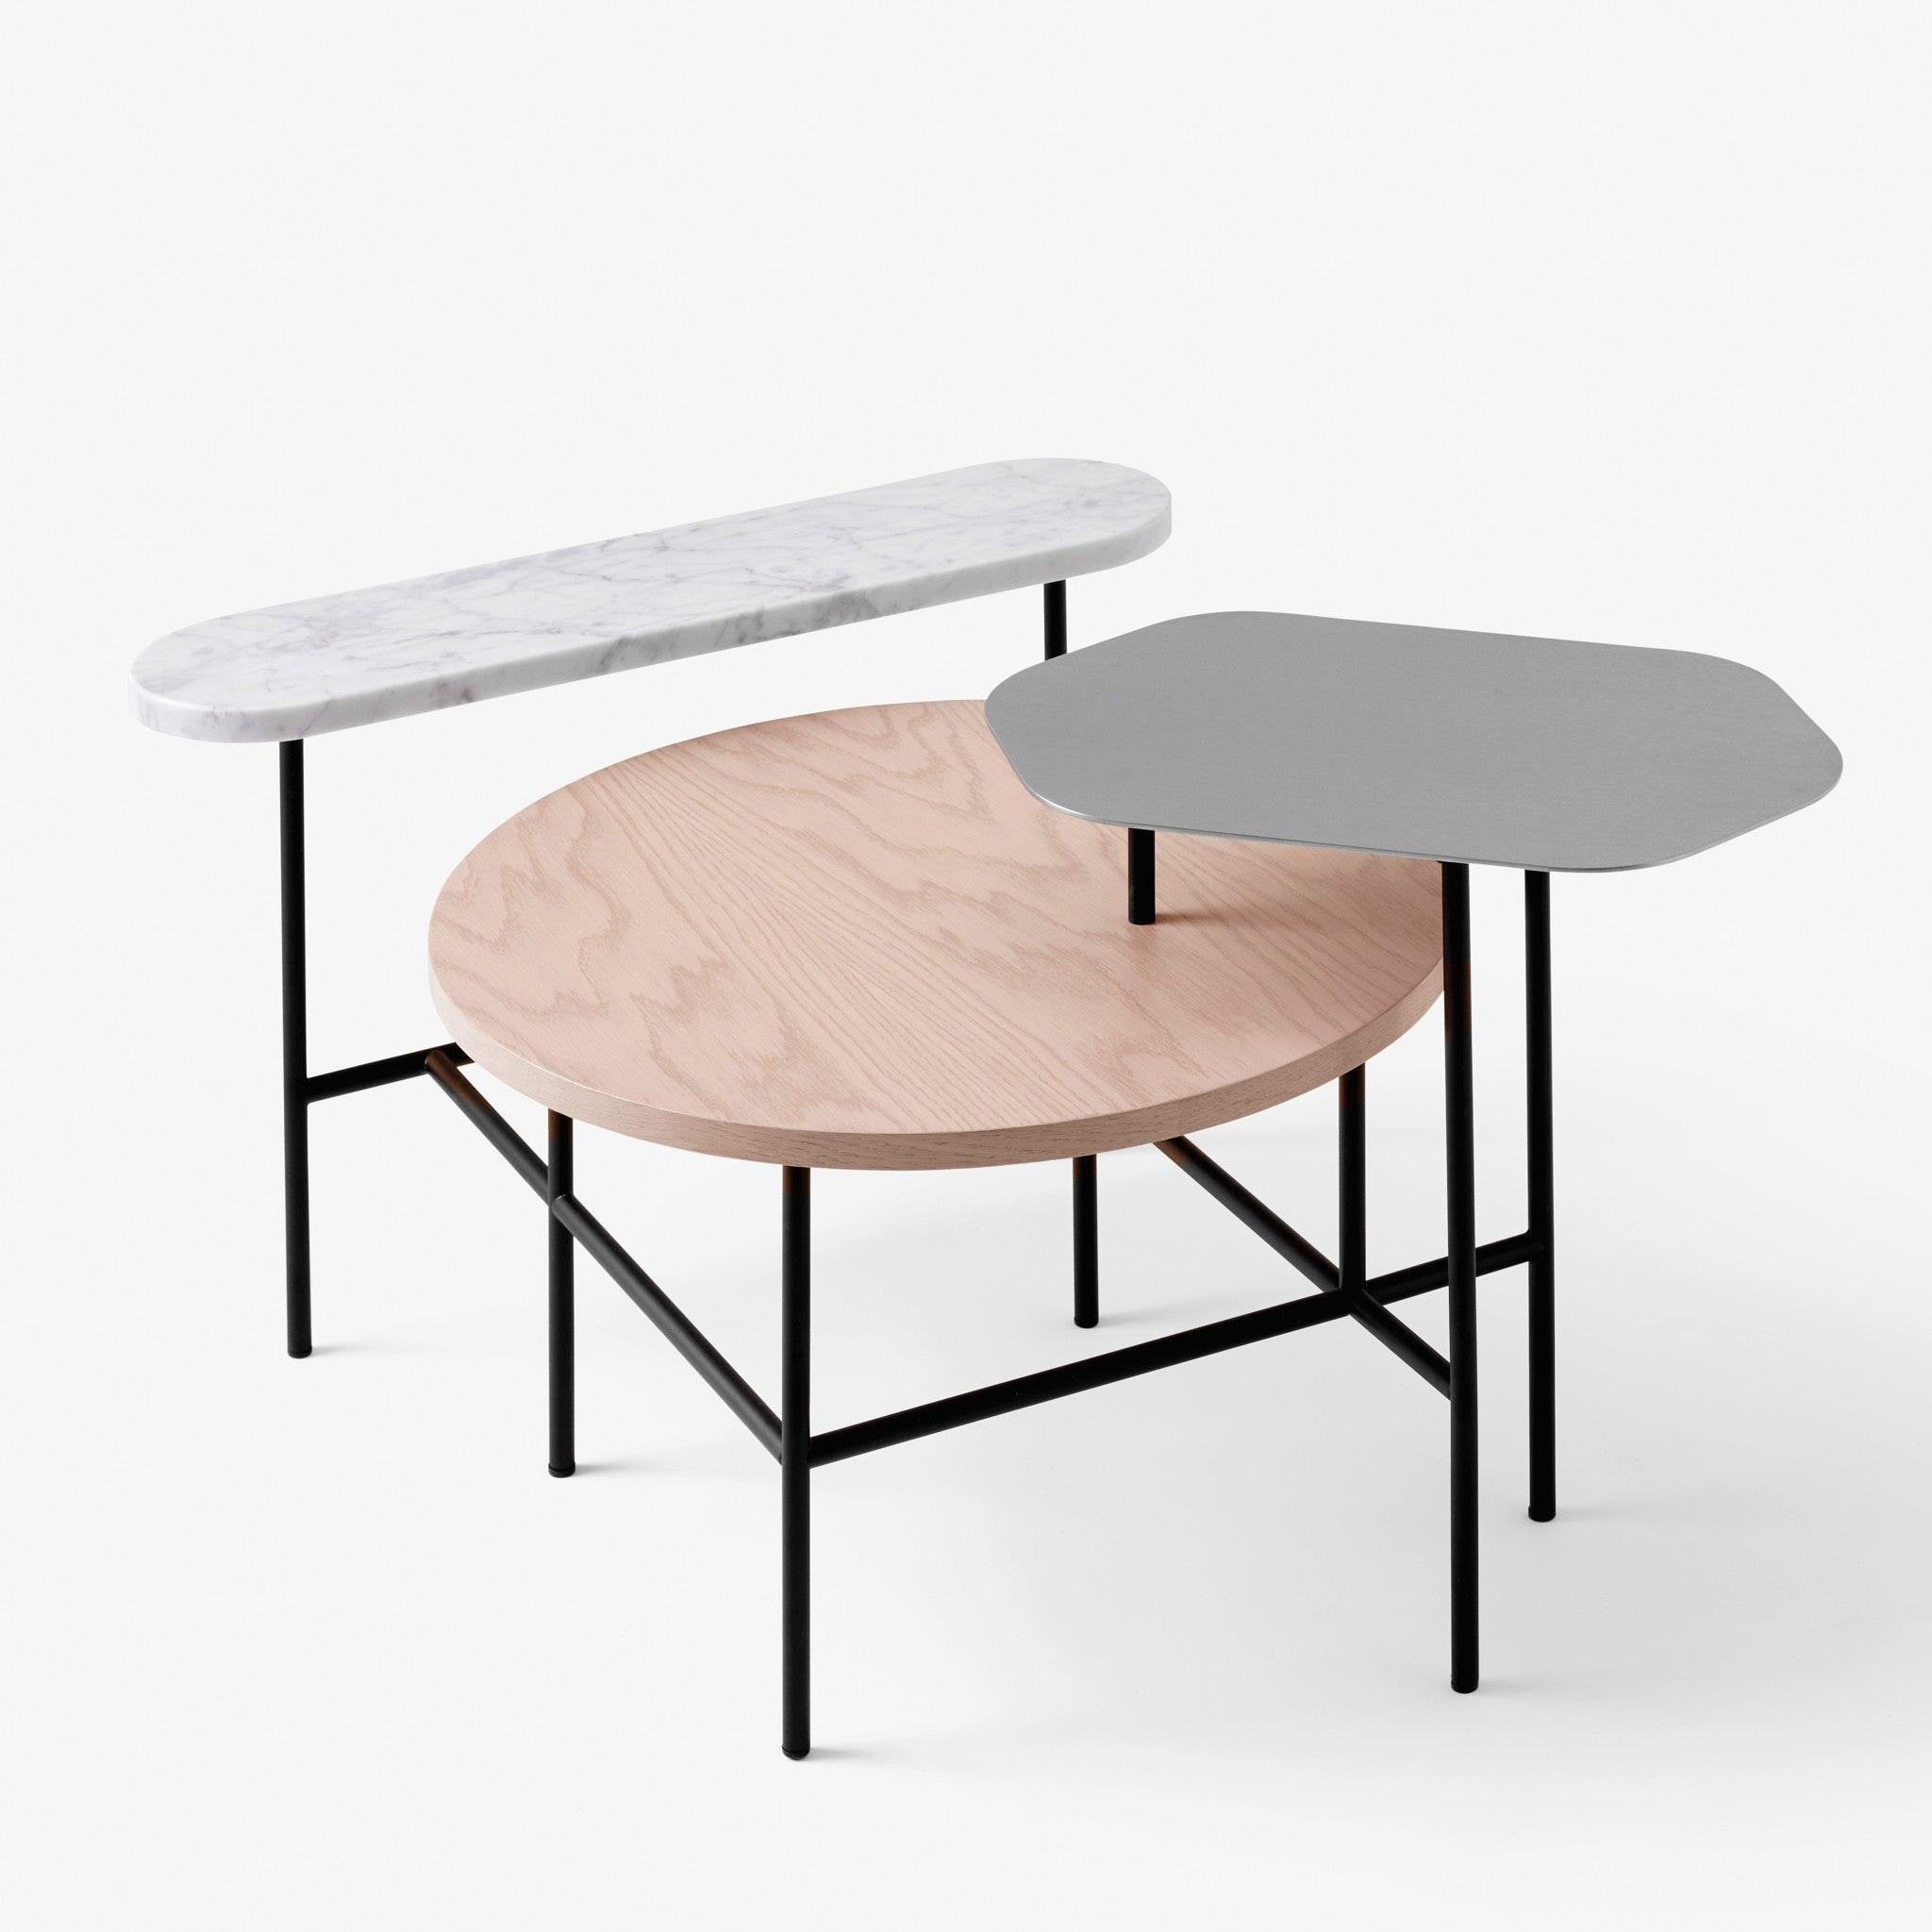 Palette Table JH6 by Jaime Hayon